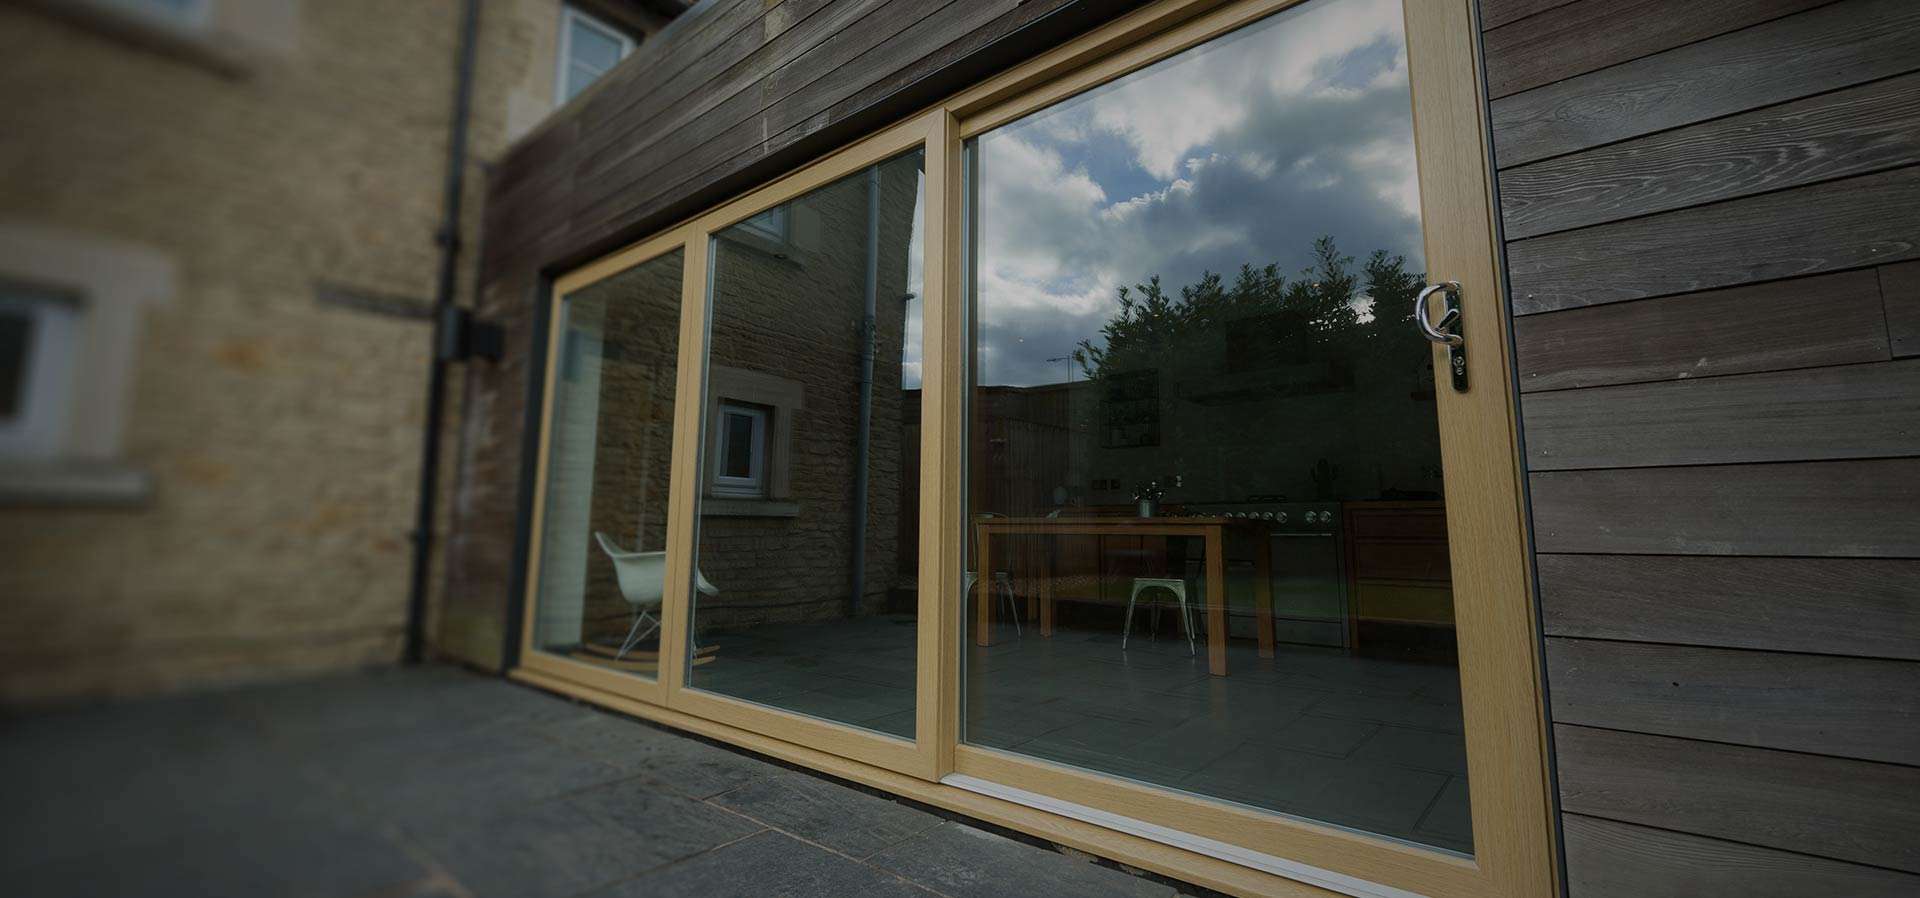 A uPVC sliding patio door in golden oak manufactured using Deceuninck's Slider24 patio door system